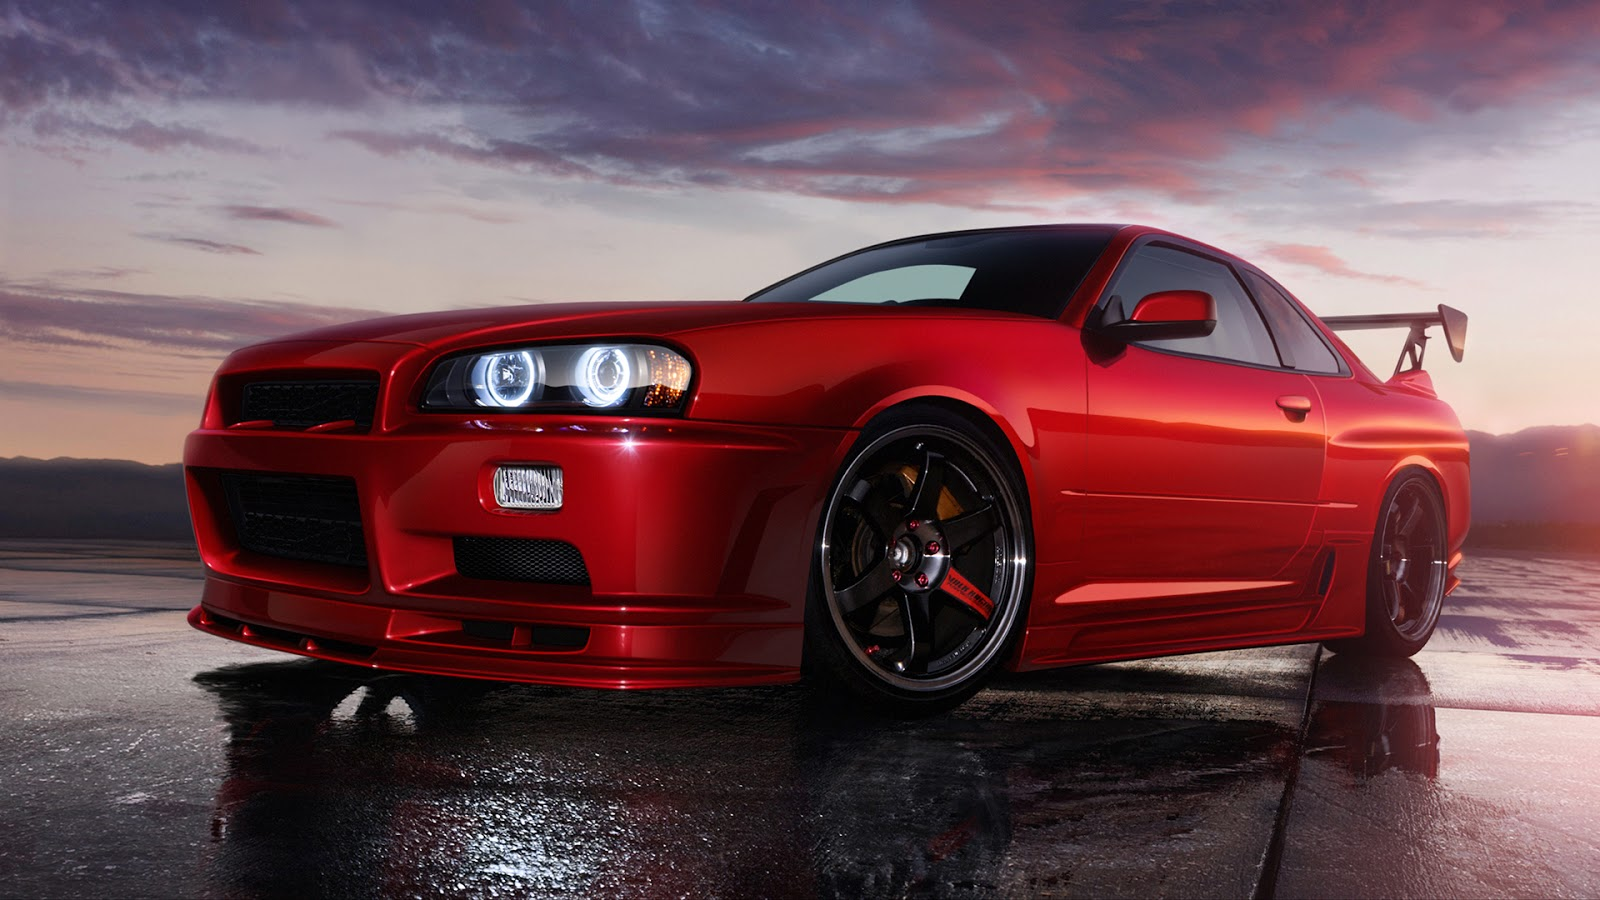 nissan skyline r34 gt r rojo fondos de pantalla hd wallpapers hd. Black Bedroom Furniture Sets. Home Design Ideas